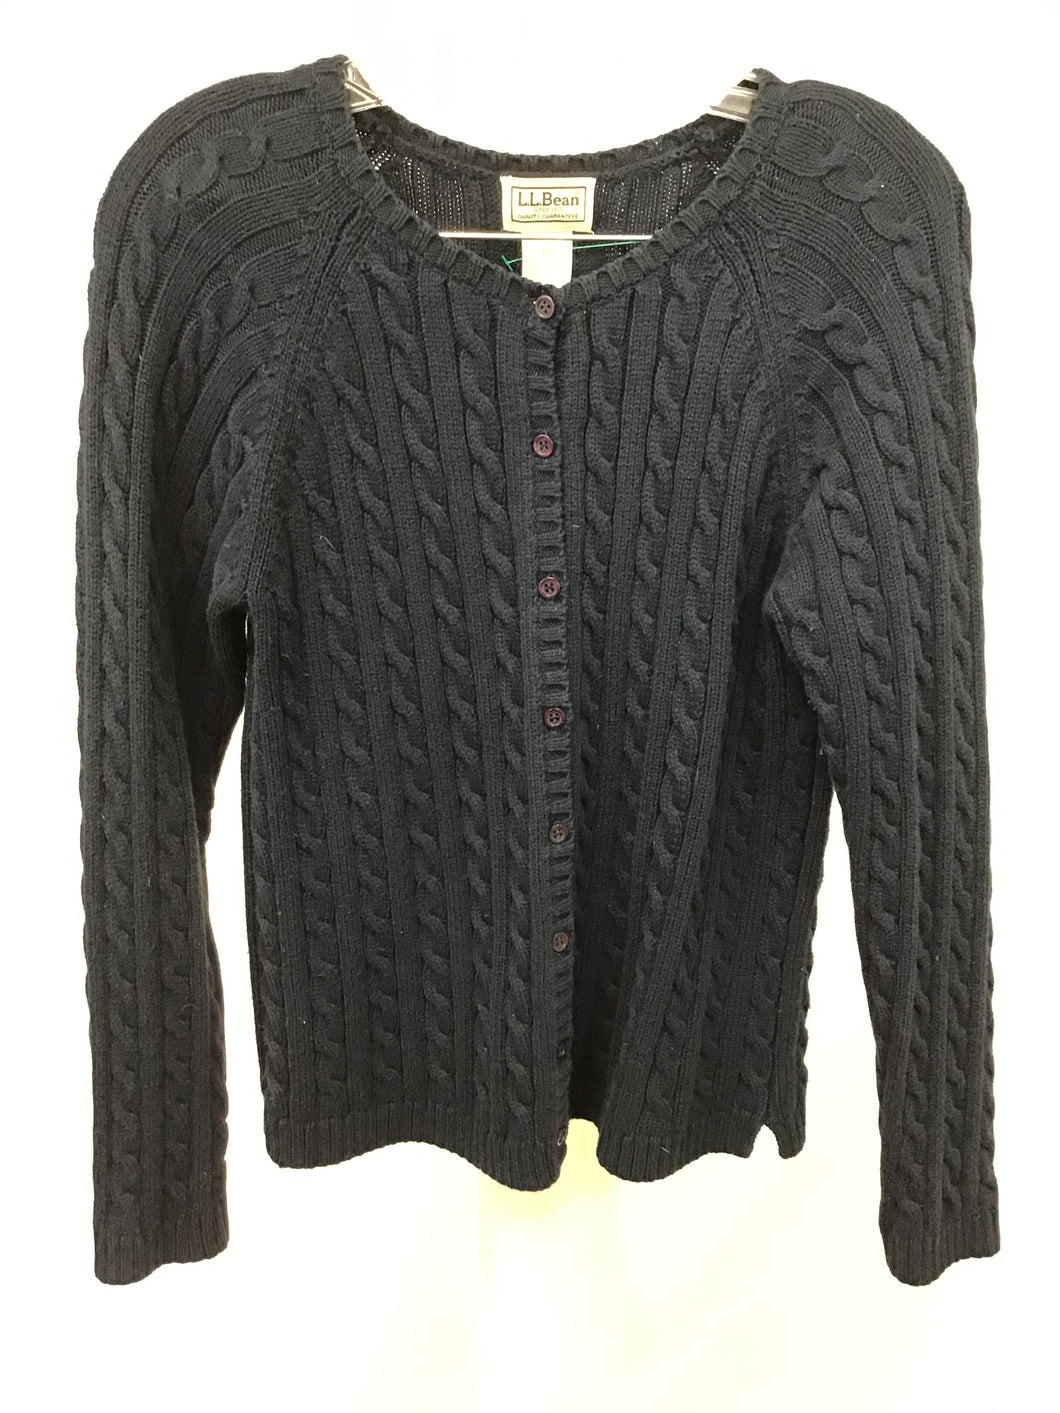 LL Bean Navy Blue Cable Cardigan